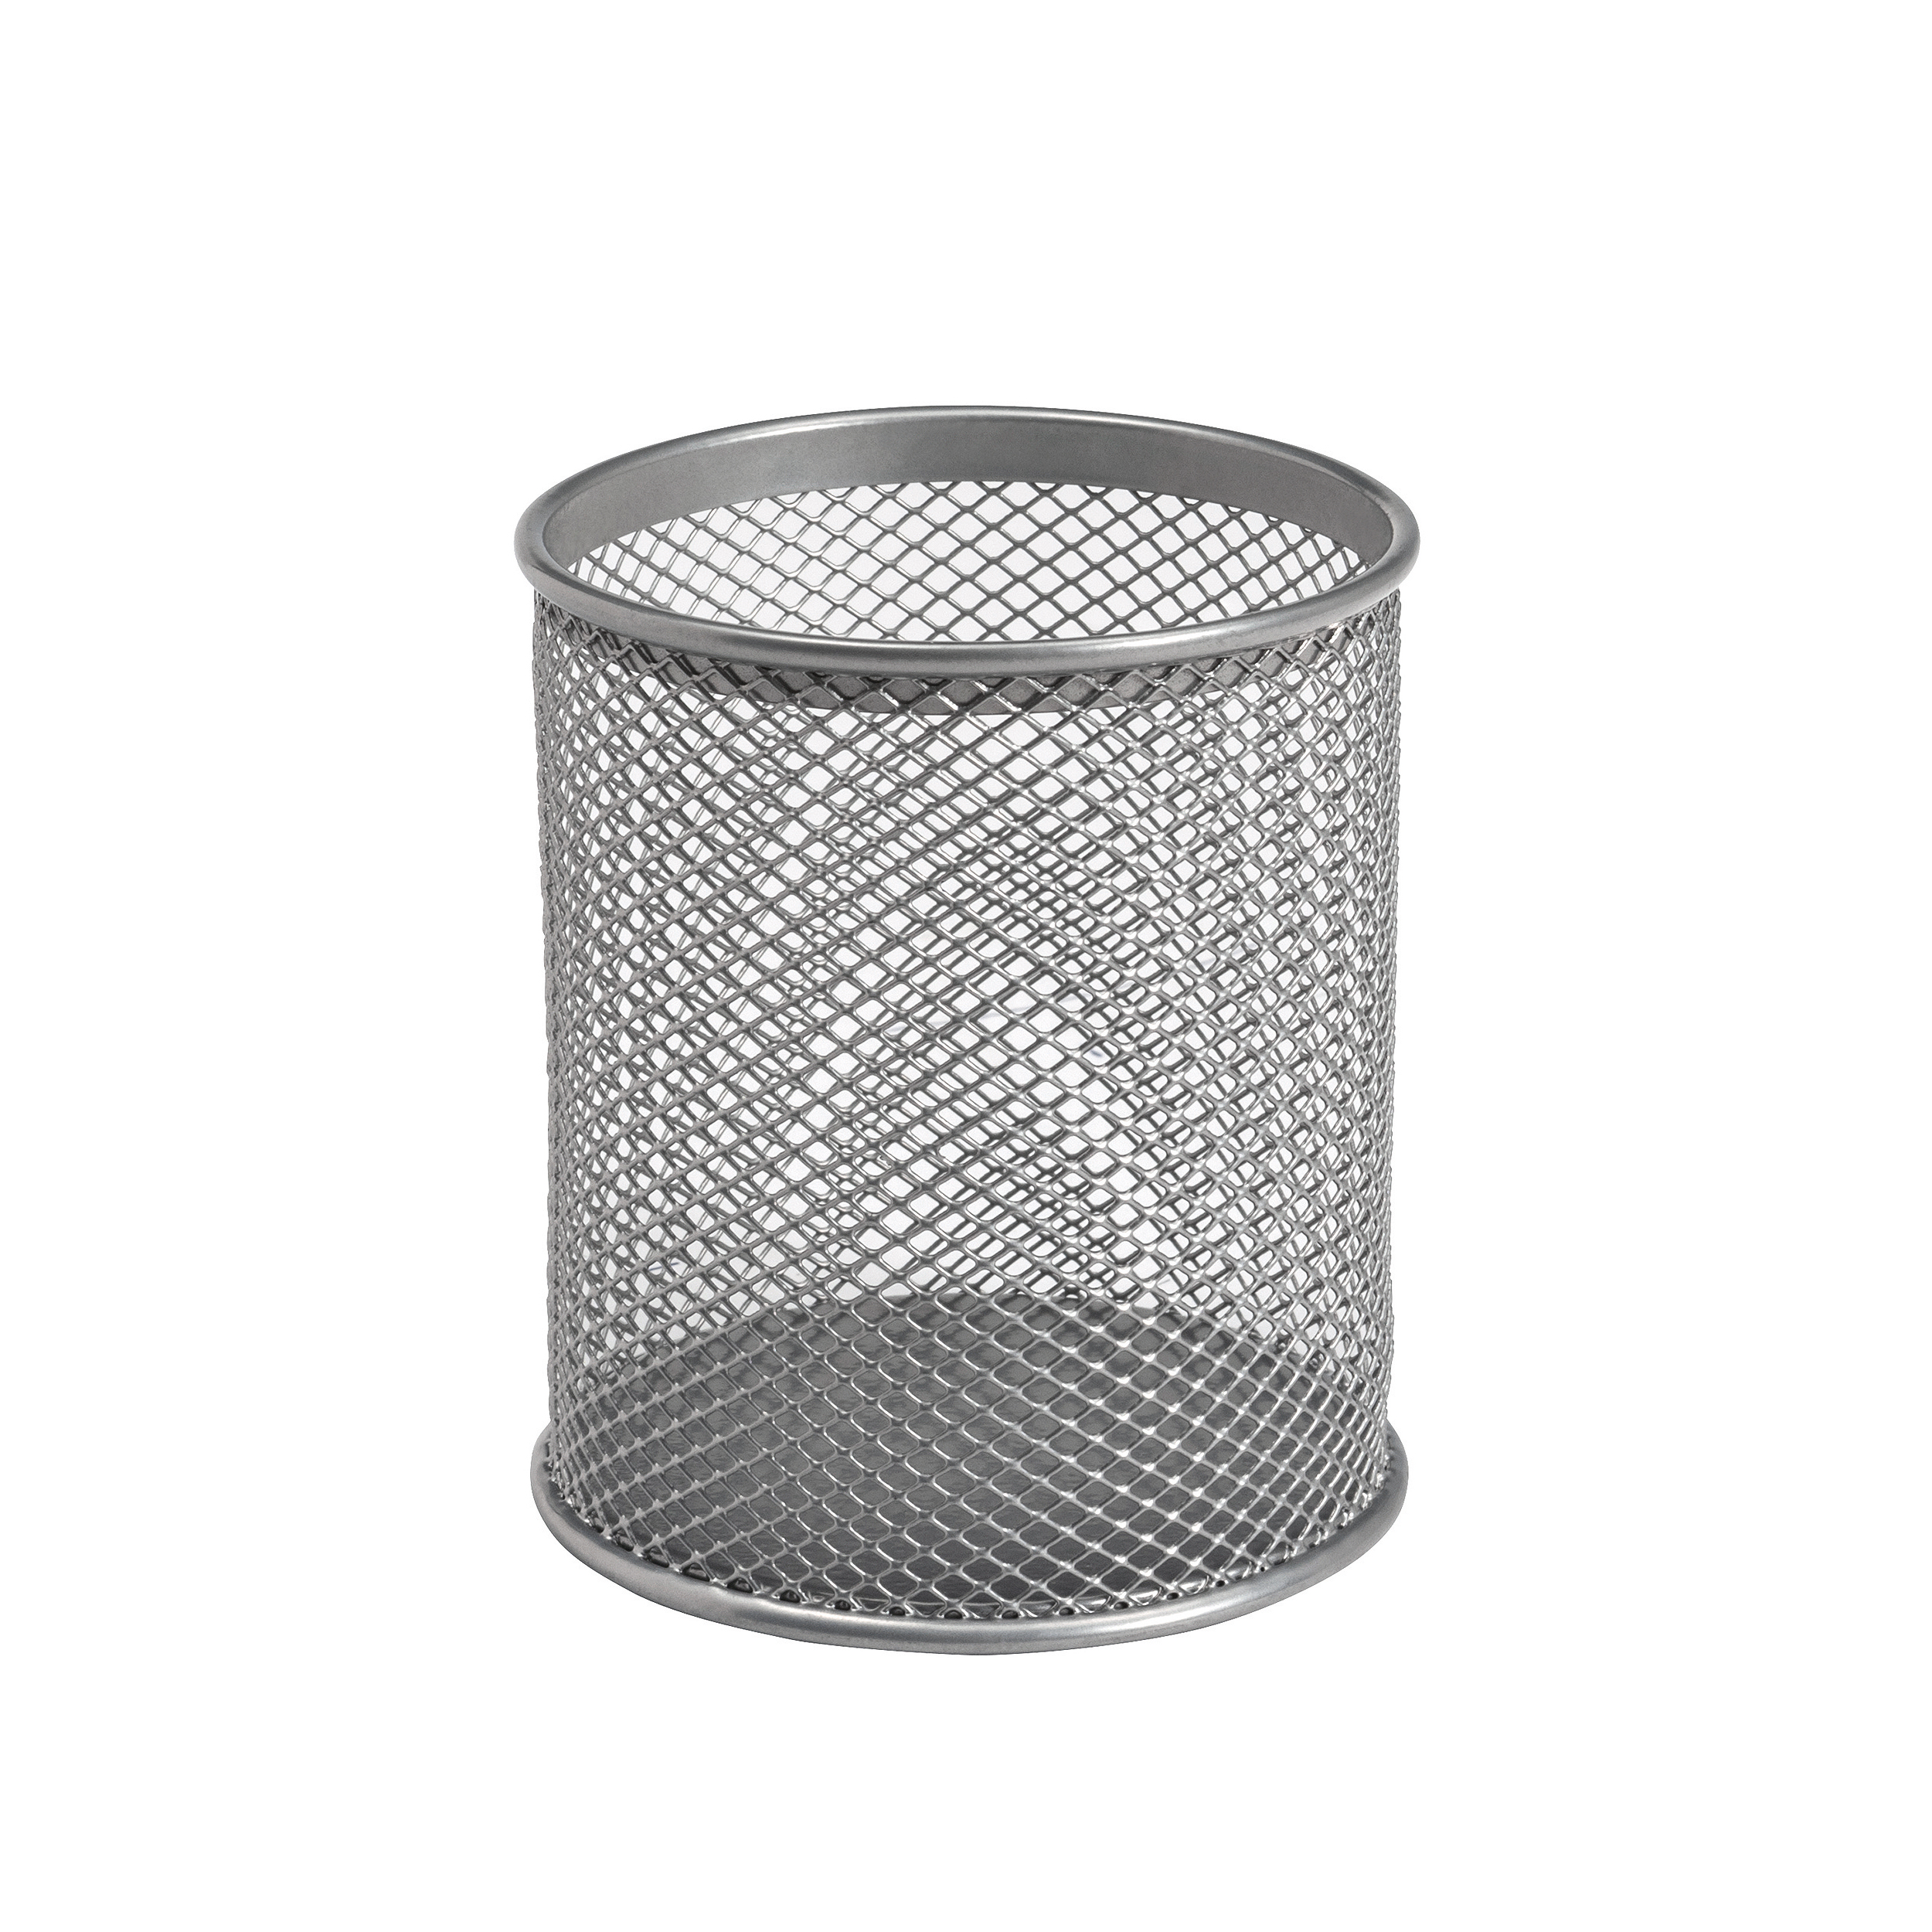 Desk Tidies 5 Star Office Pen Pot Wire Mesh DiaxH: 80x95mm Silver